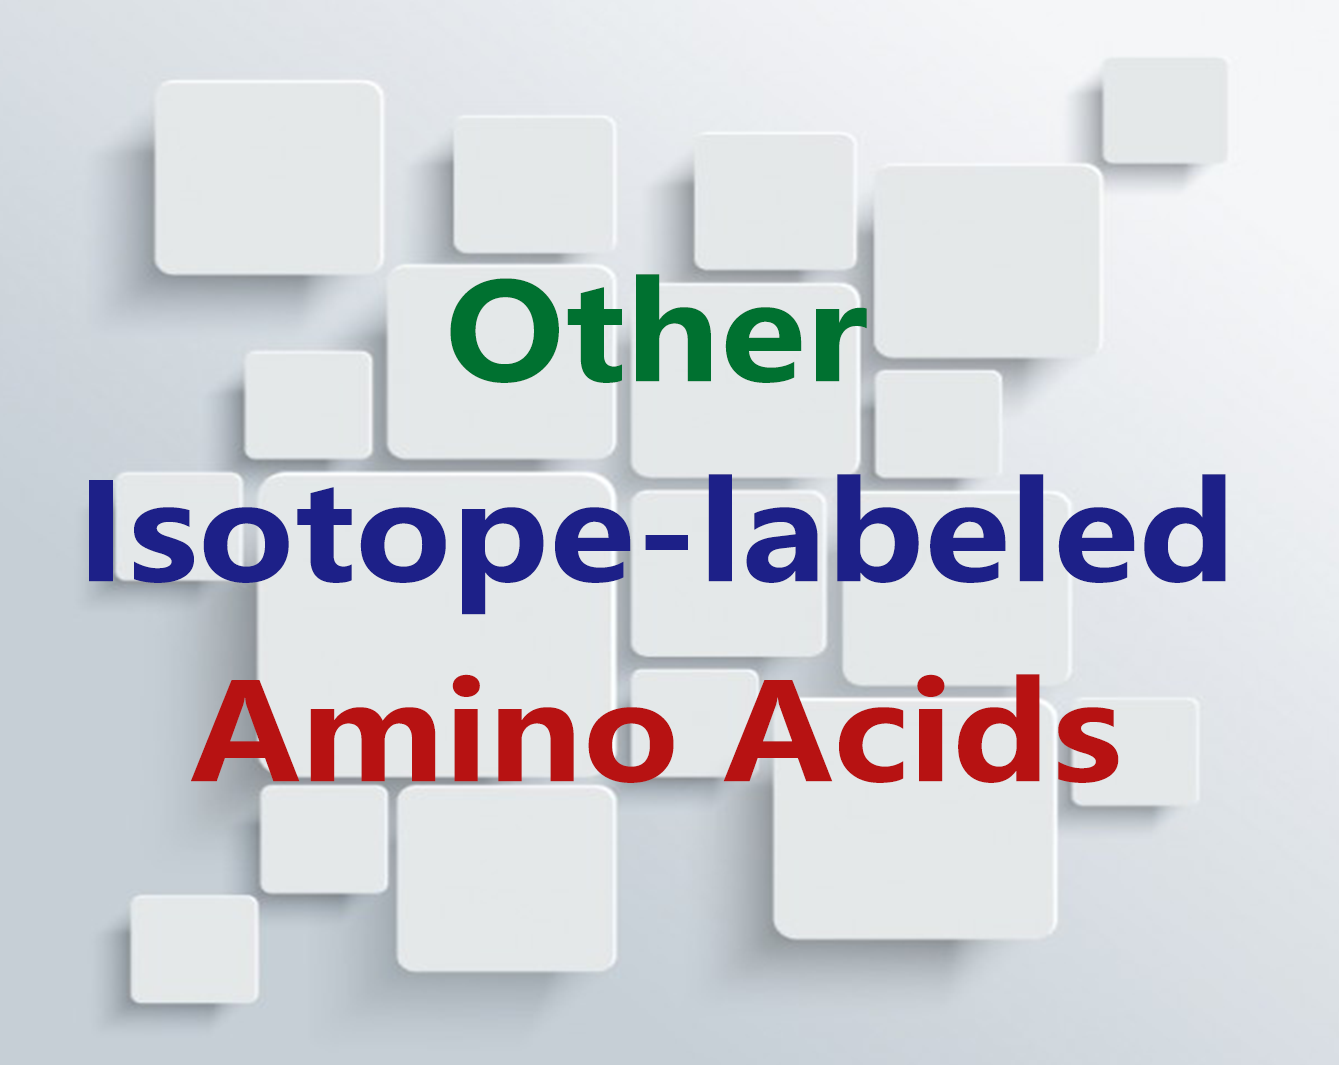 Other Stable Isotope-labeled AA